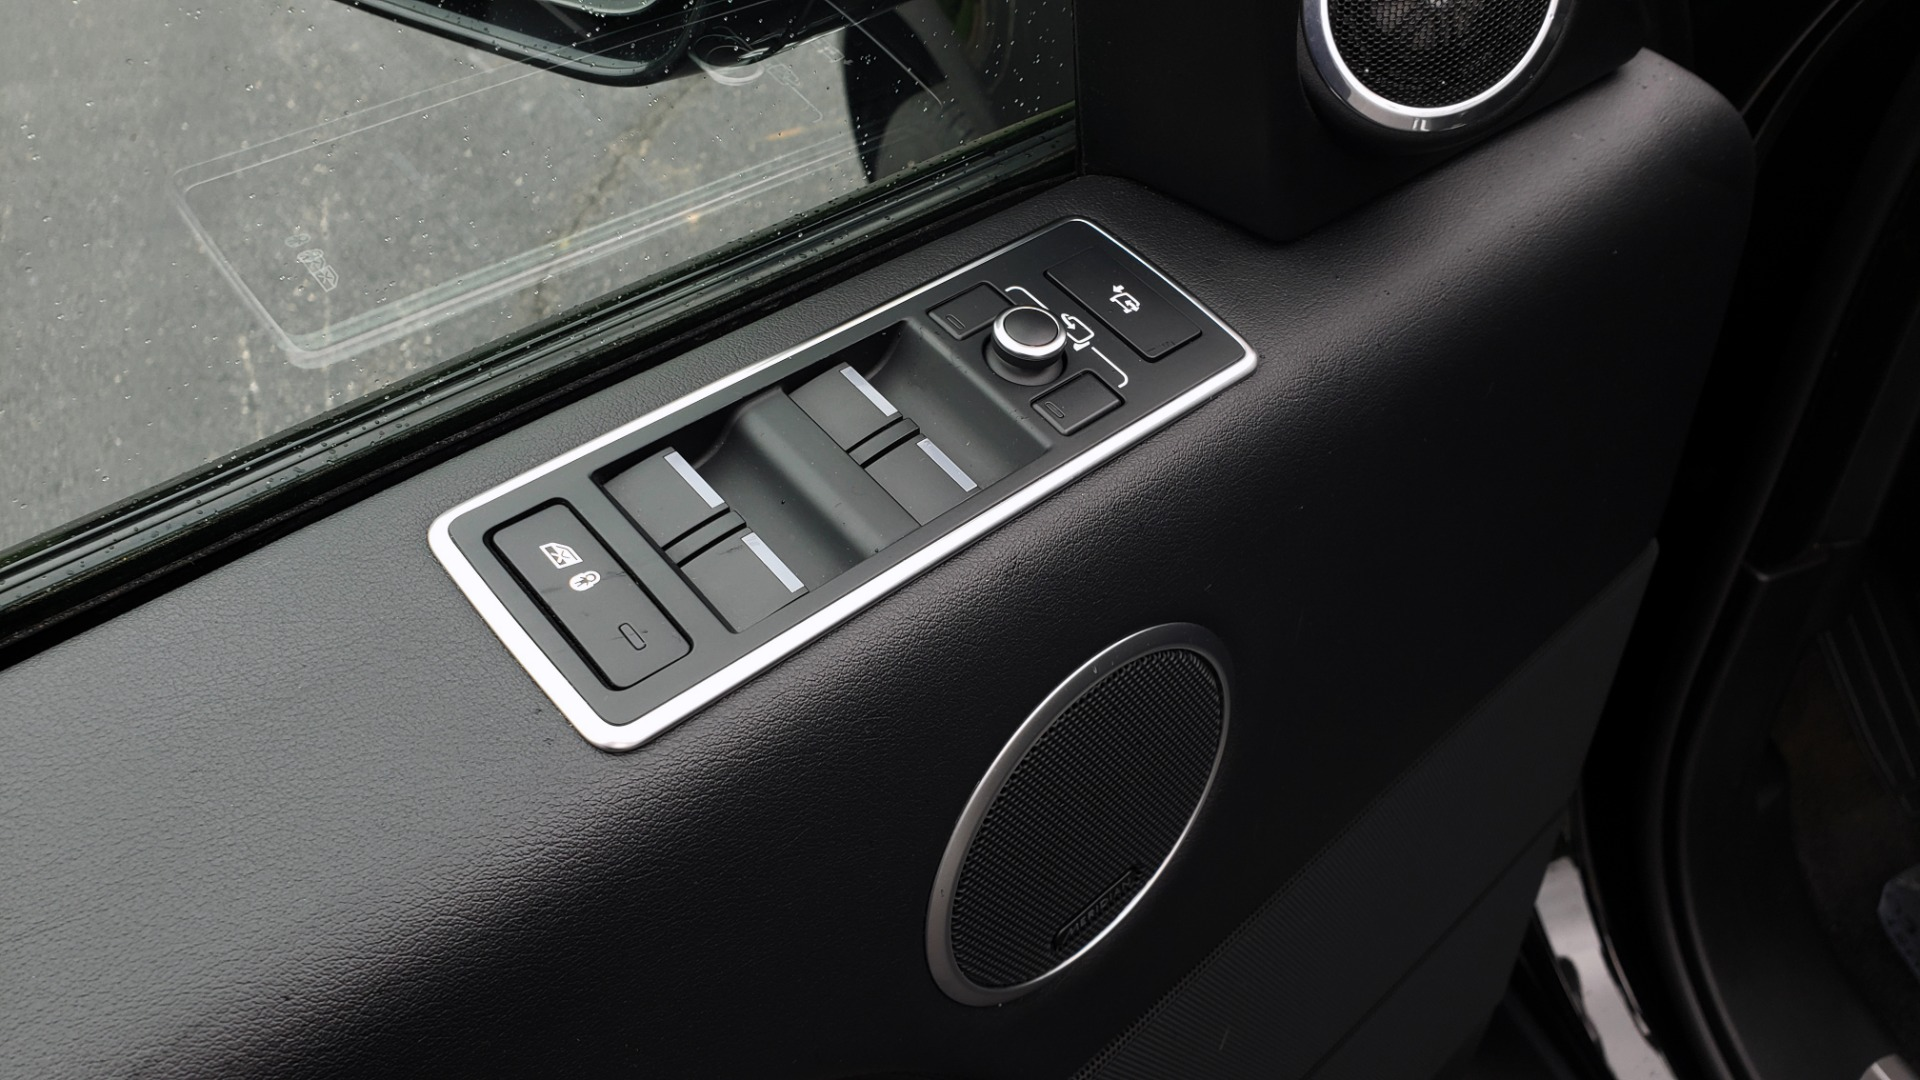 Used 2016 Land Rover Range Rover HSE 3.0L SC V6 / NAV / PANO-ROOF / VENT SEATS / REARVIEW / BLIND SPOT for sale Sold at Formula Imports in Charlotte NC 28227 40